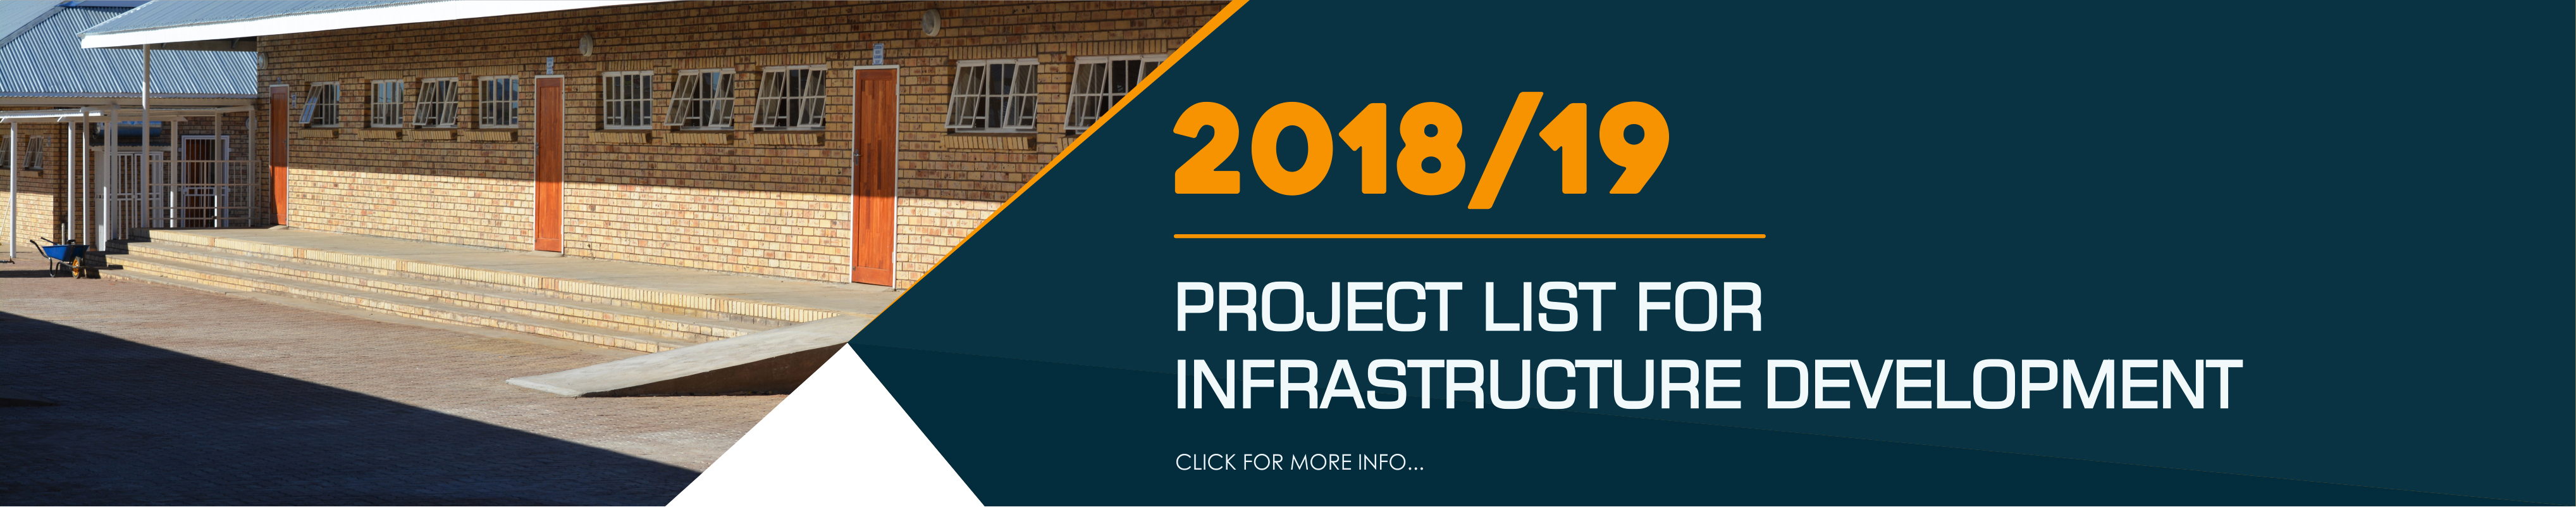 2018/19 Project List